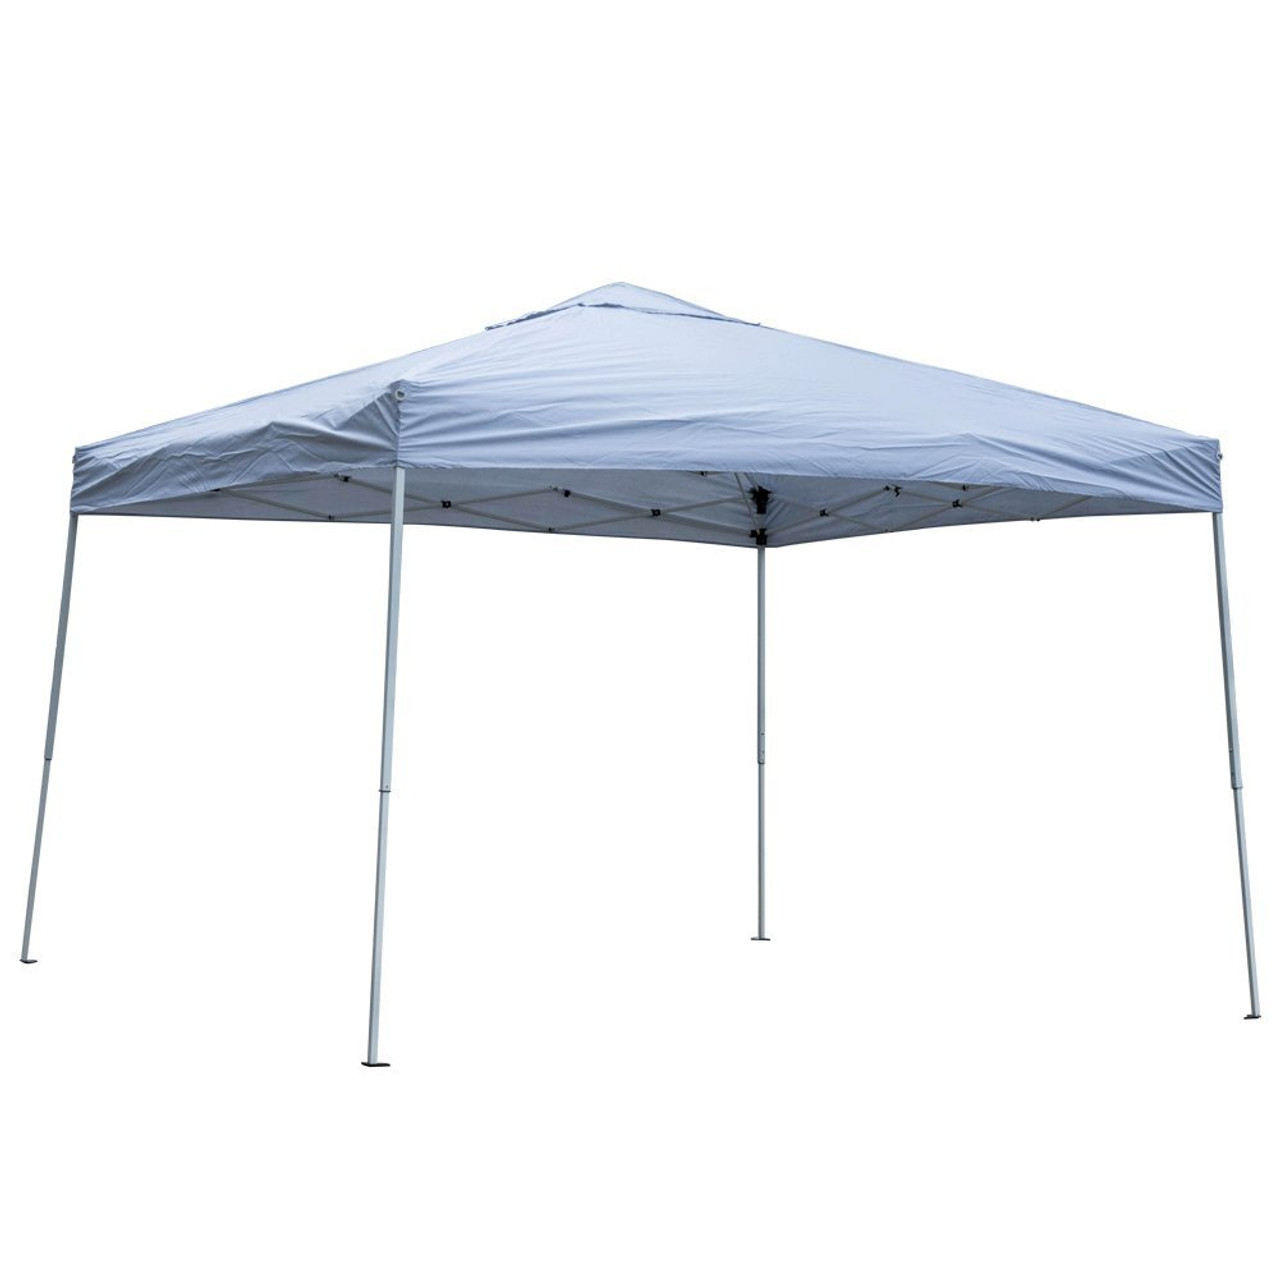 10 x 10 FT Portable Canopy Tent Set with Roller Bag  sc 1 st  Sundale Outdoor : 10x10 canopy tents - memphite.com